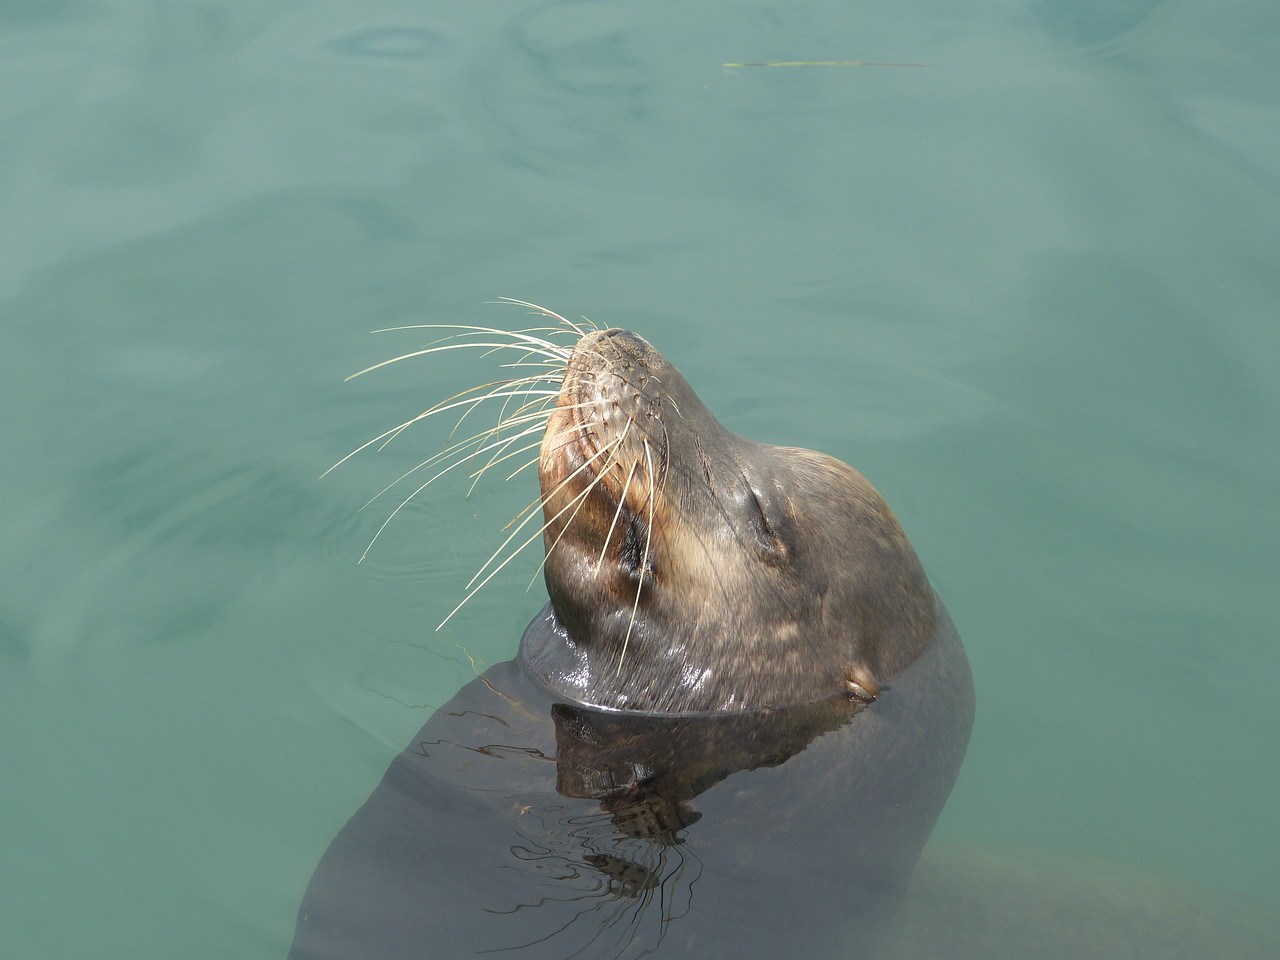 I can tell he's awake, sniffin' for more fish -- see how his whiskers are forward!